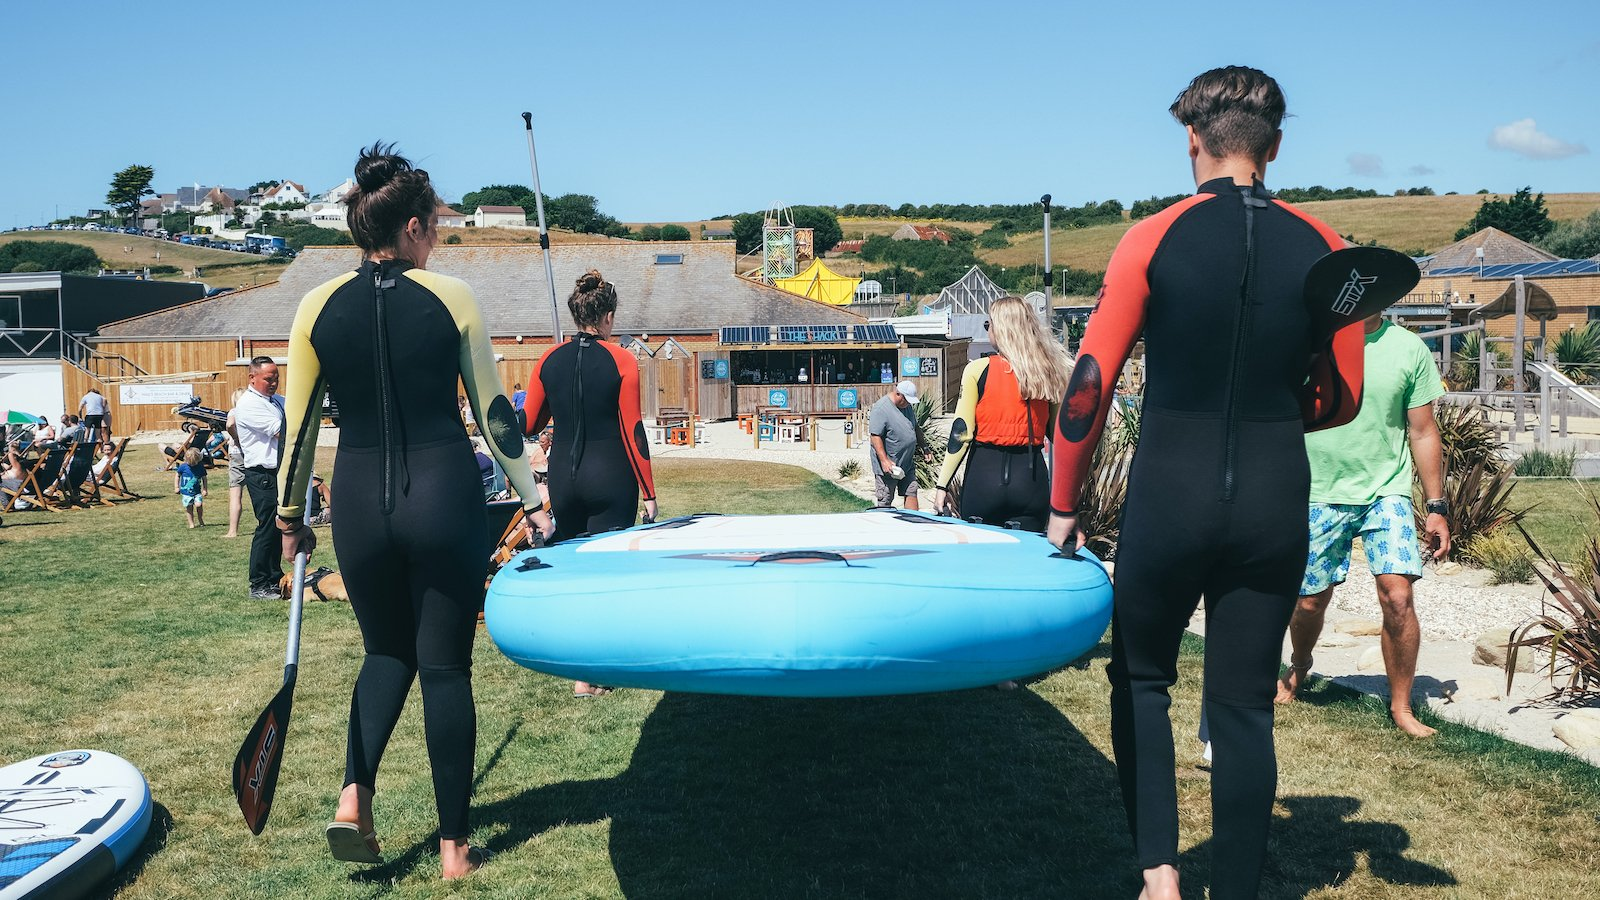 Group Paddleboard SUP Rental and Hire in Weymouth and Portland, Dorset